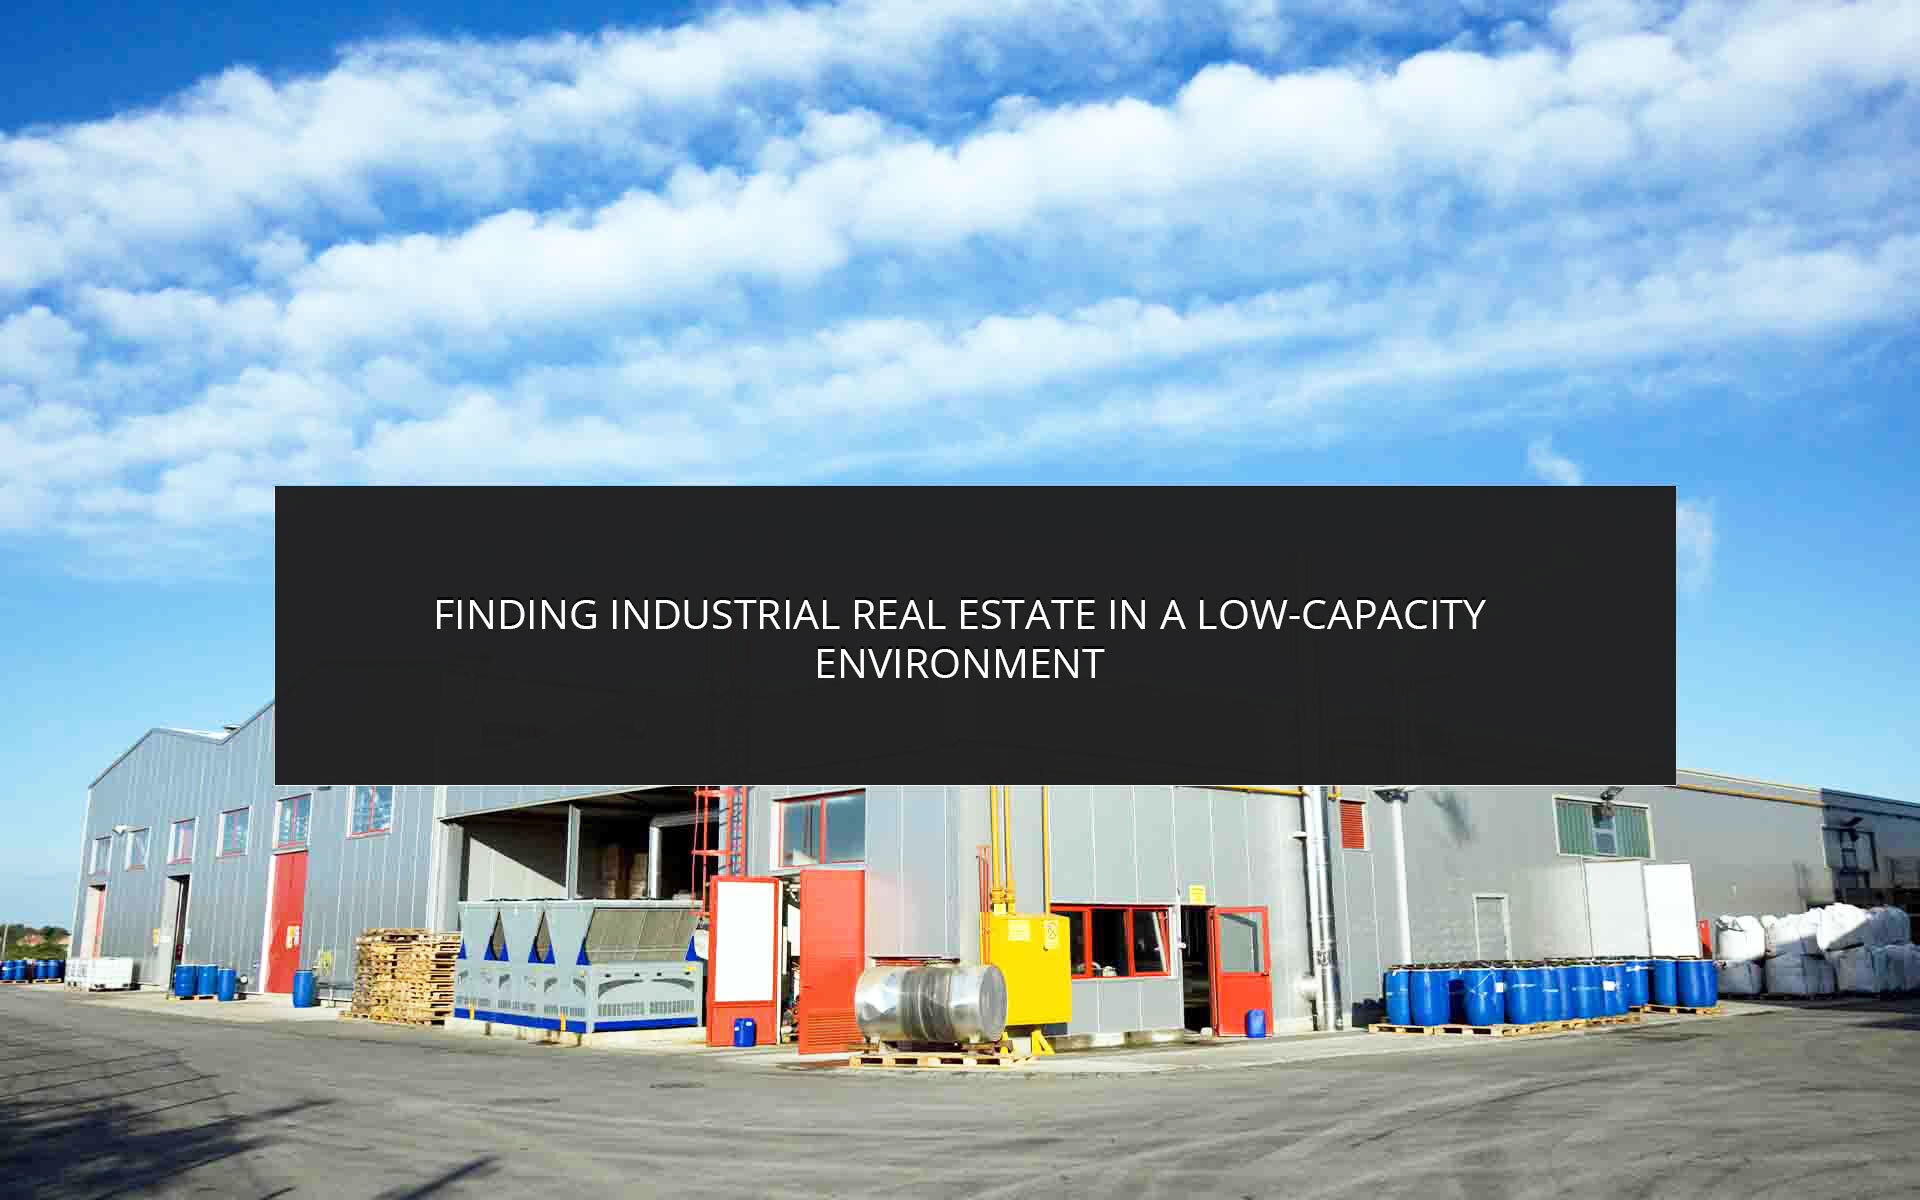 Finding Industrial Real Estate in a Low-Capacity Environment